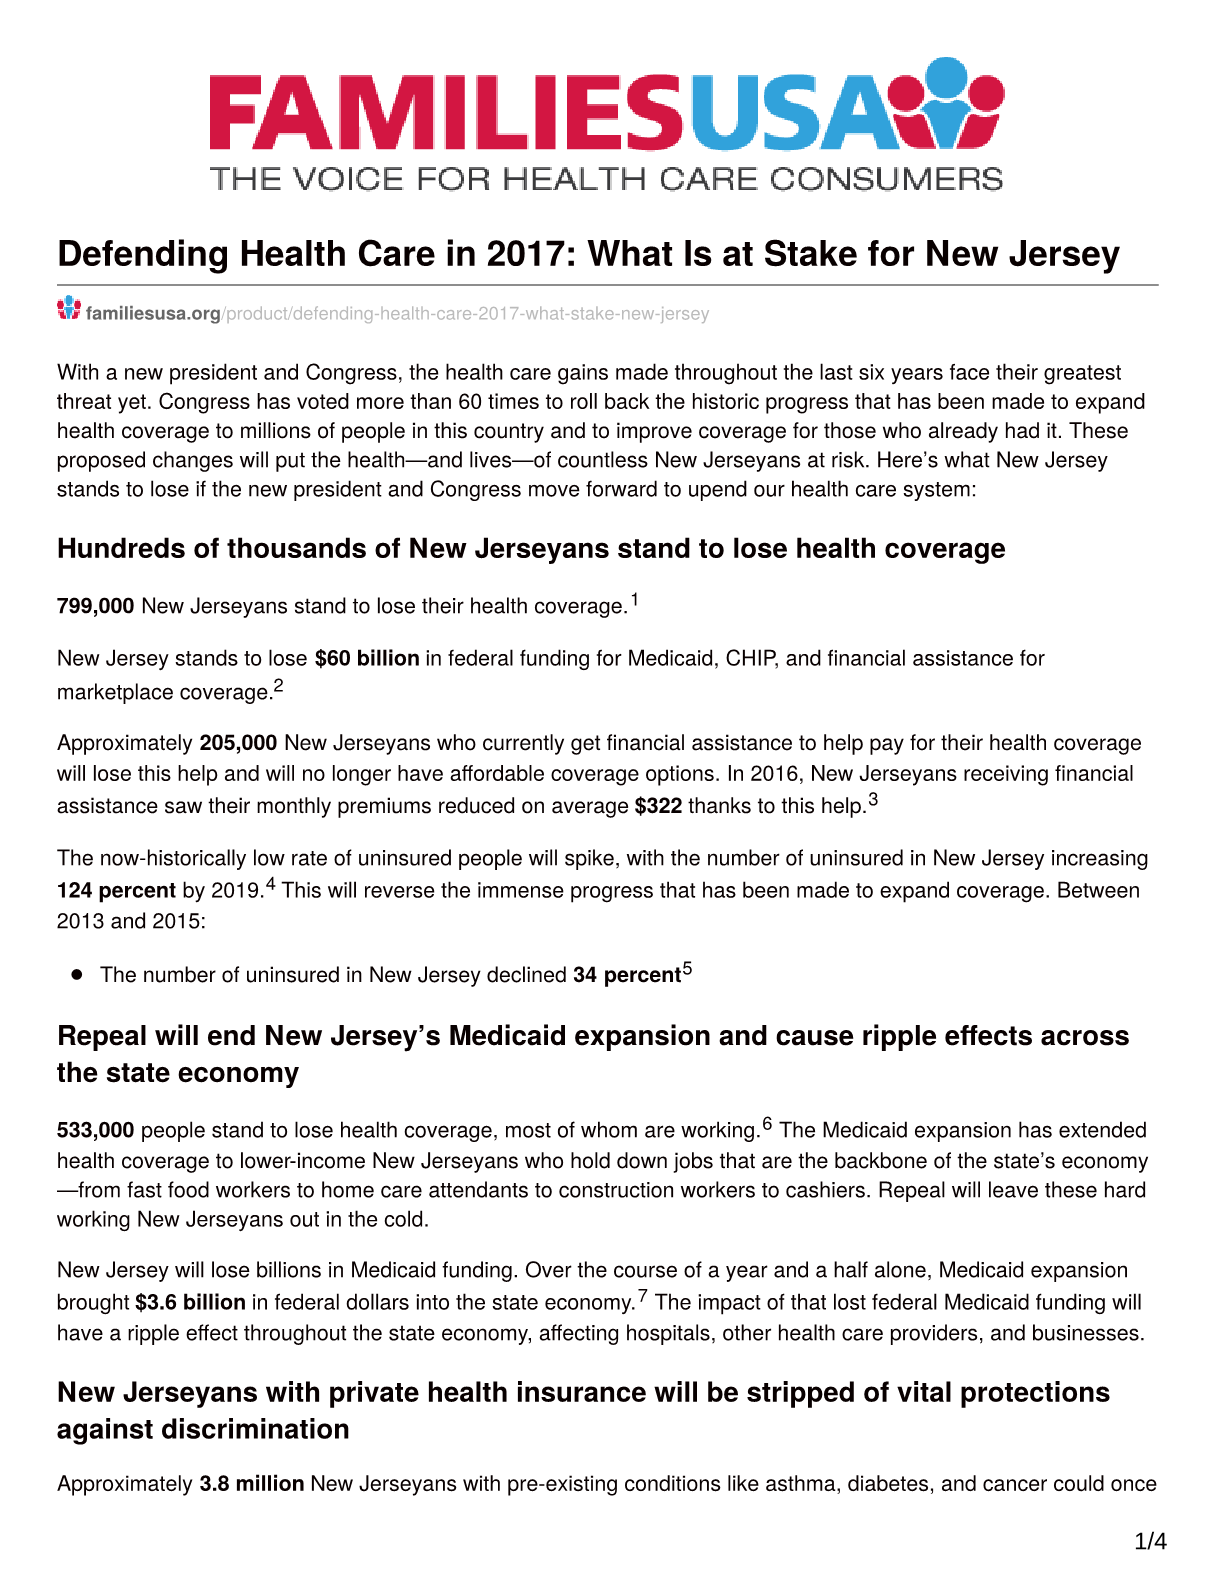 Defending Healthcare in 2017 - What is at Stake for New Jersey?